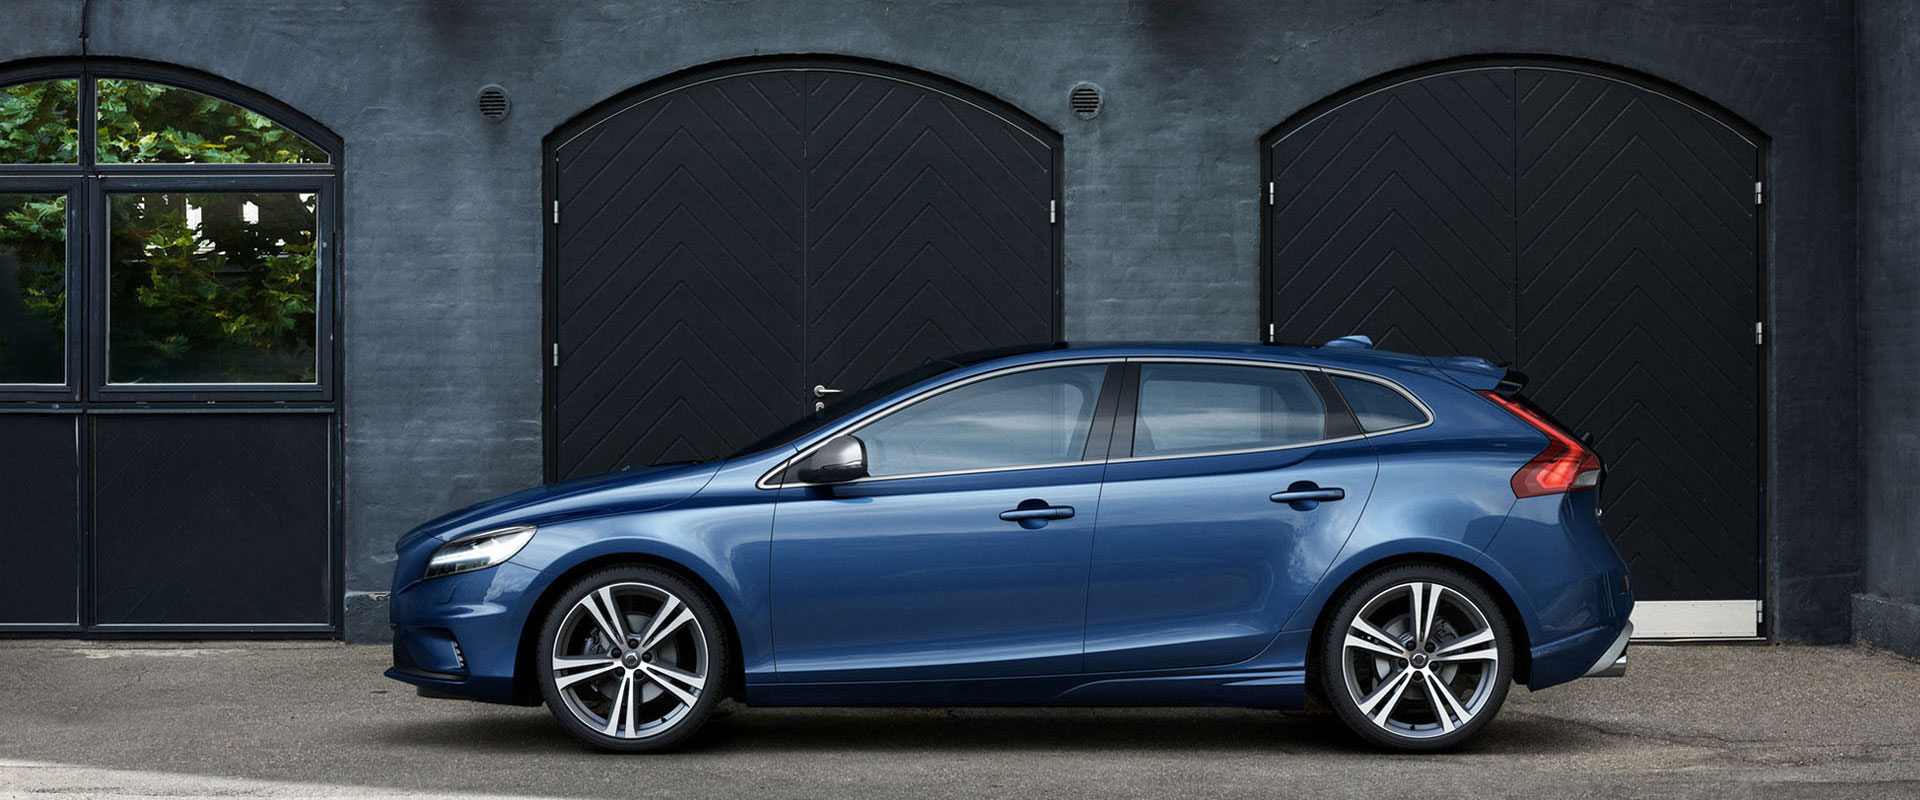 new volvo v40 for sale volvo cars parramatta. Black Bedroom Furniture Sets. Home Design Ideas